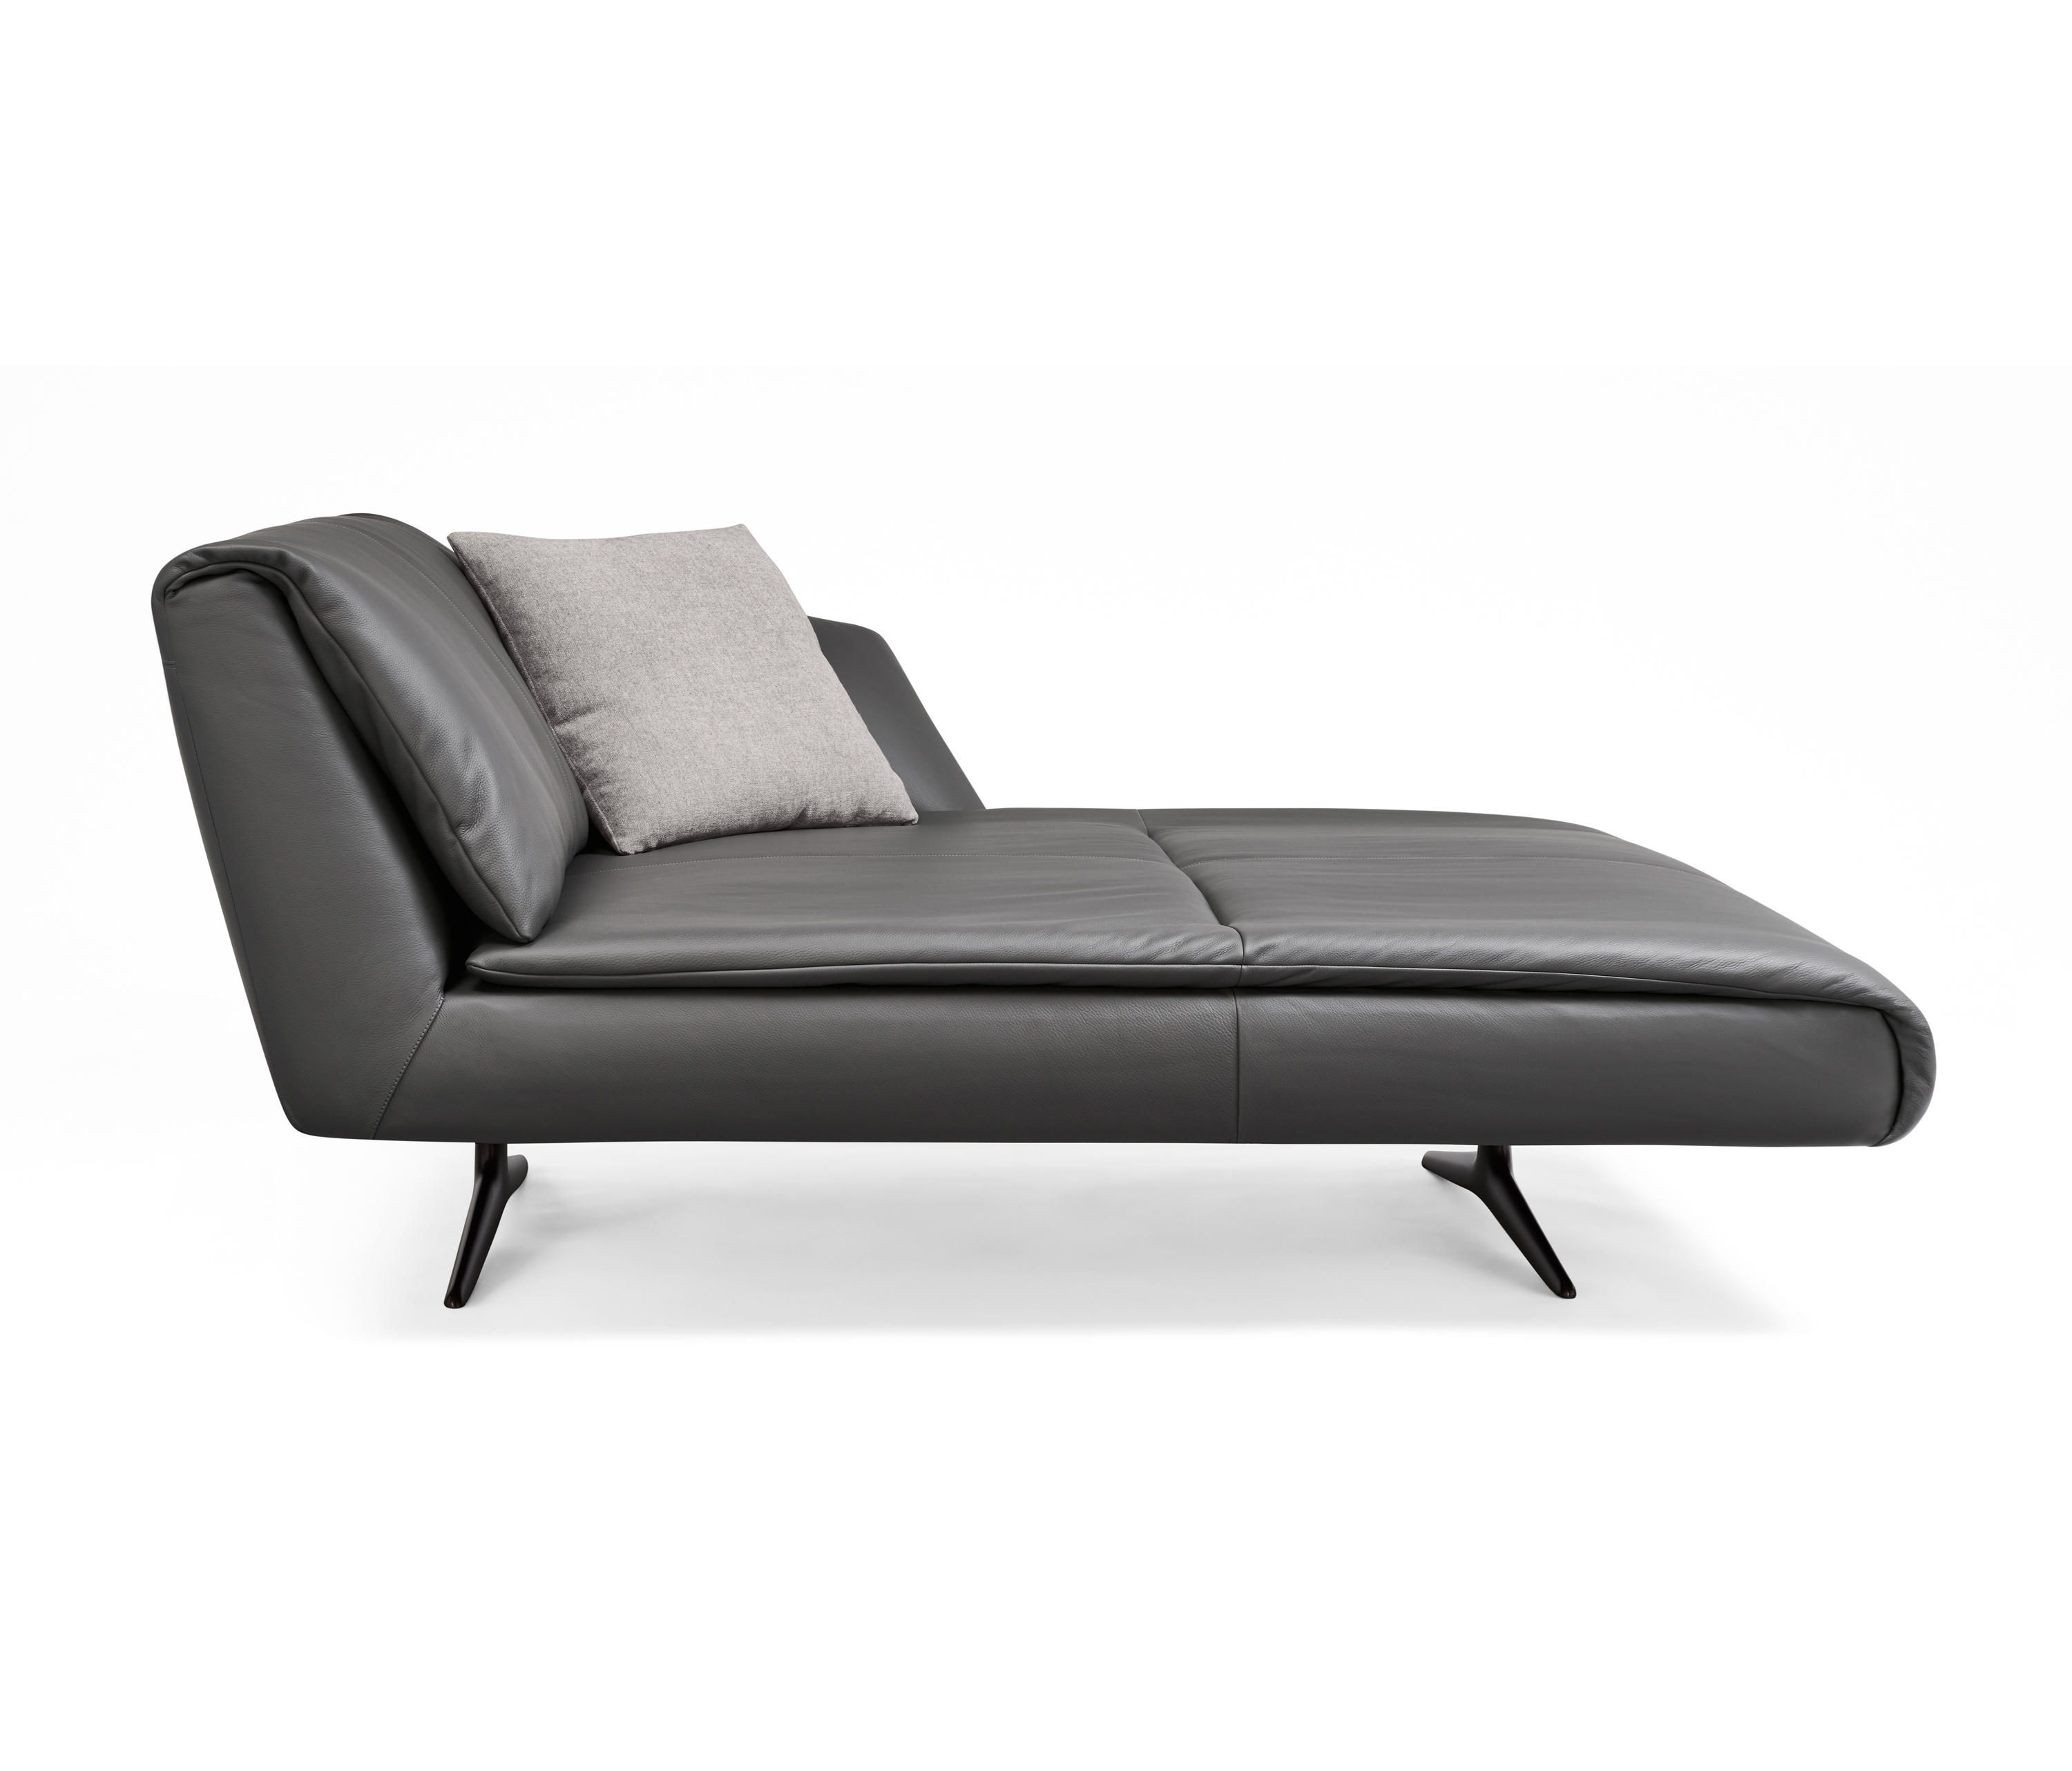 Walter Knoll Sofa Bundle Sofa Sofas From Walter Knoll Architonic 沙發 In 2019